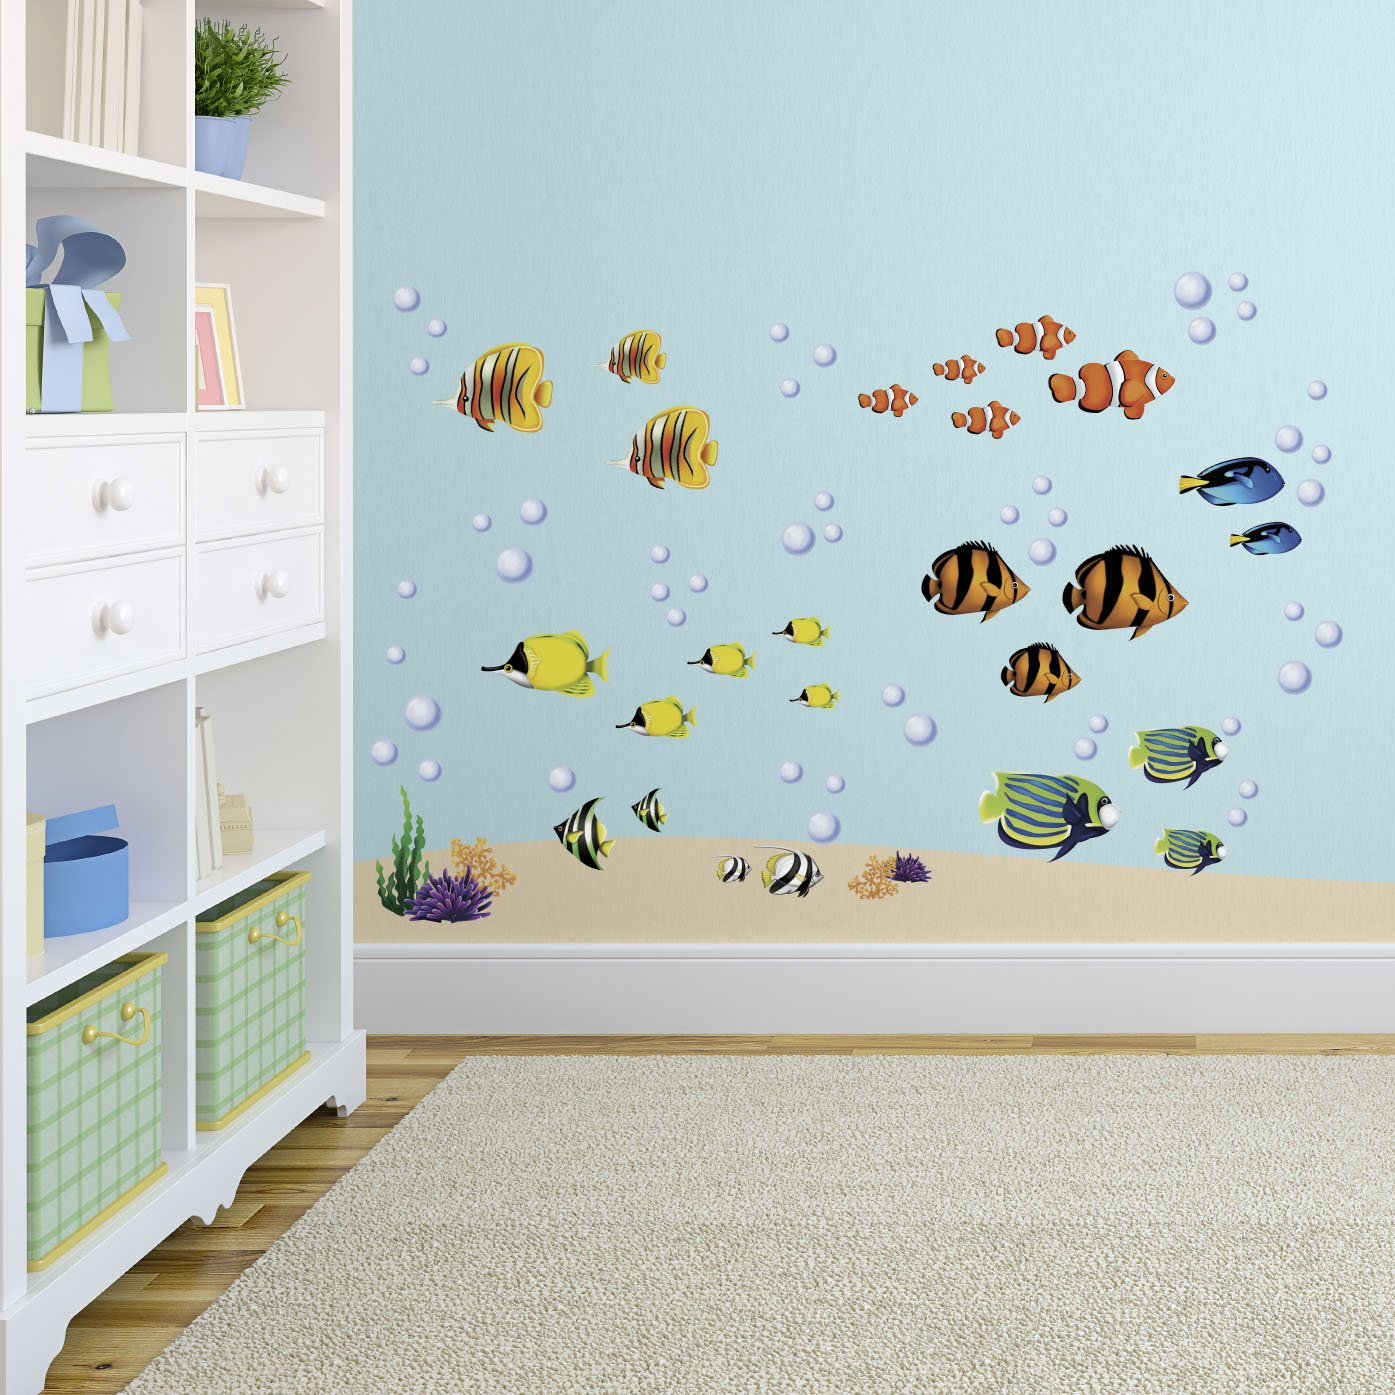 Under the Sea Fish & Coral Reef Decorative Peel and Stick Wall Sticker Decals by CherryCreek Decals